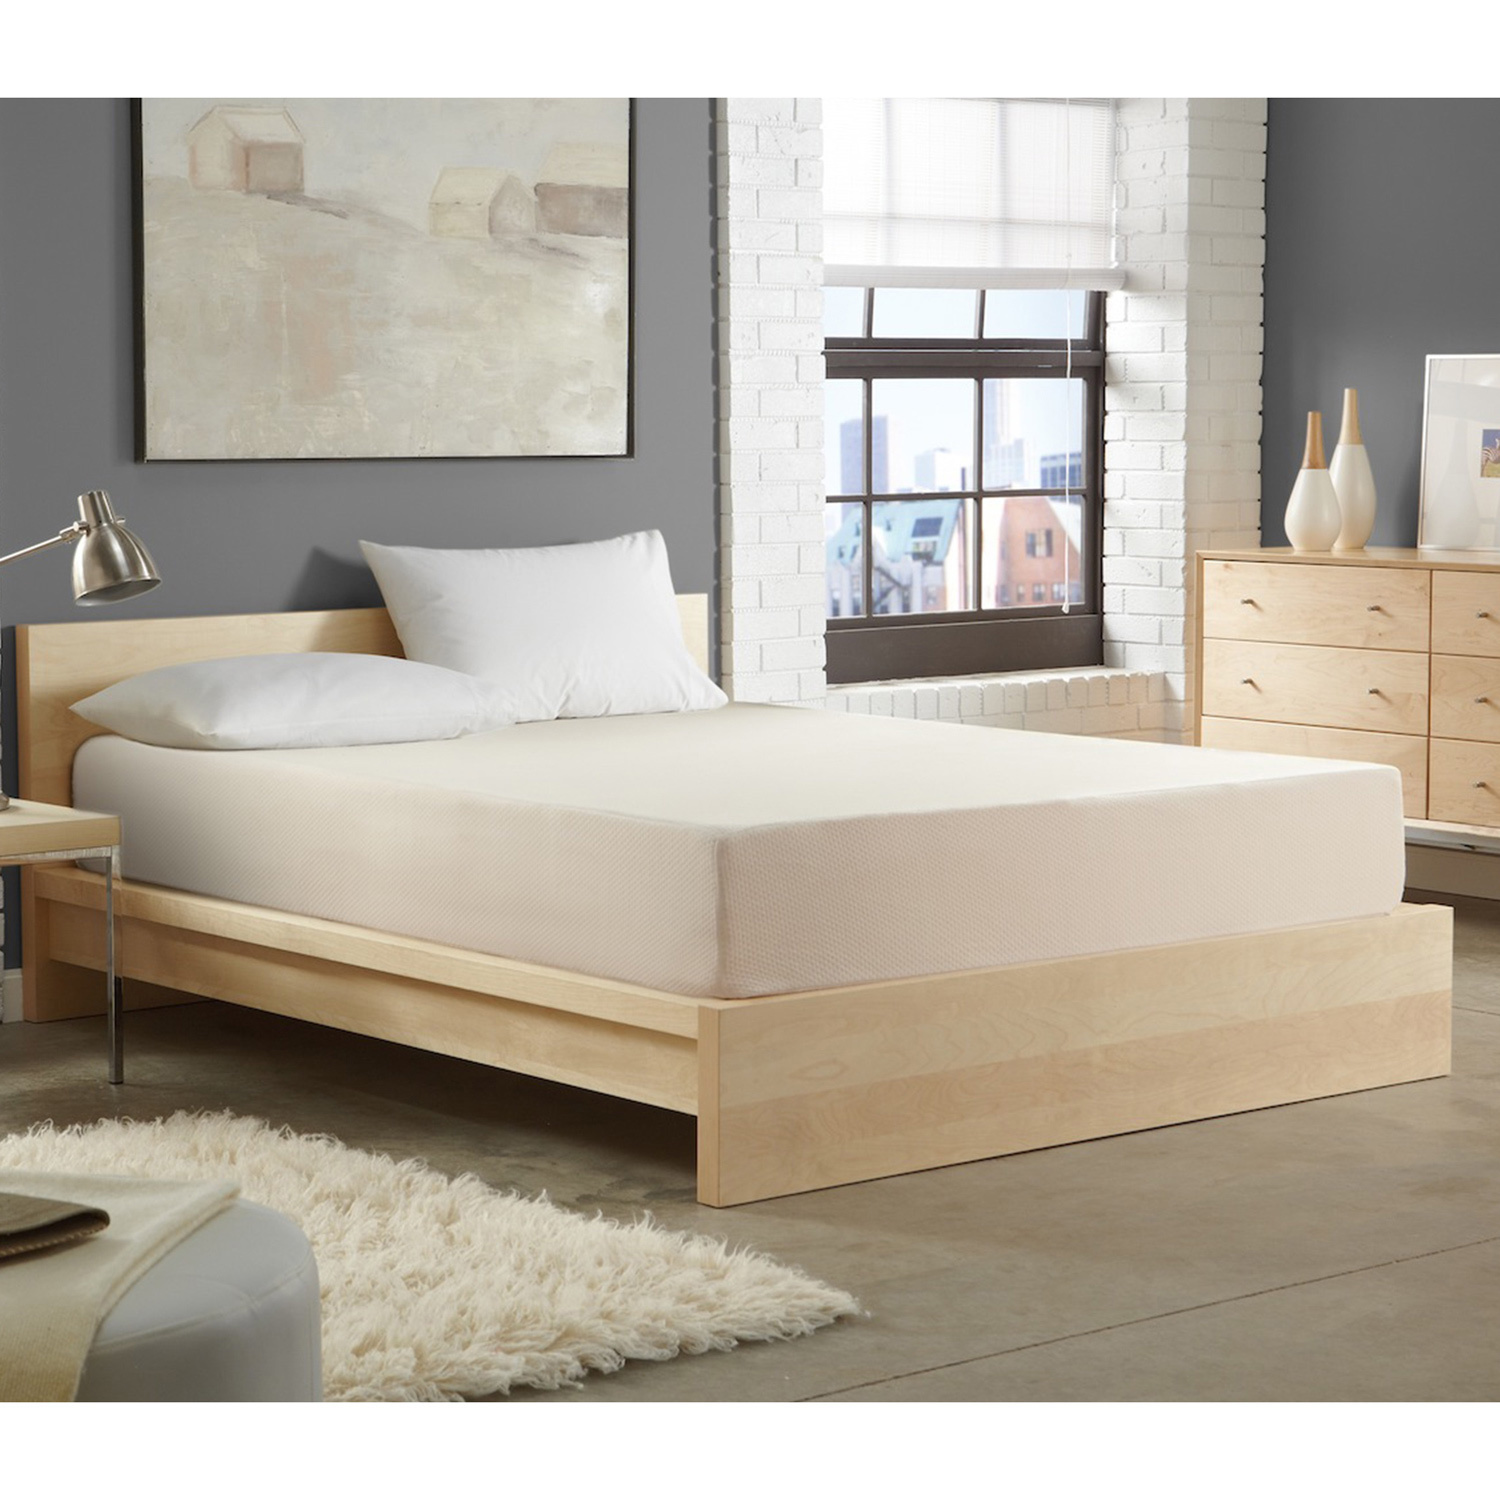 WHITE by Sarah Peyton Home Collection WHITE by Sarah Peyton 14-inch Convection Cooled Firm Support Cal King-size Memory Foam Mattress